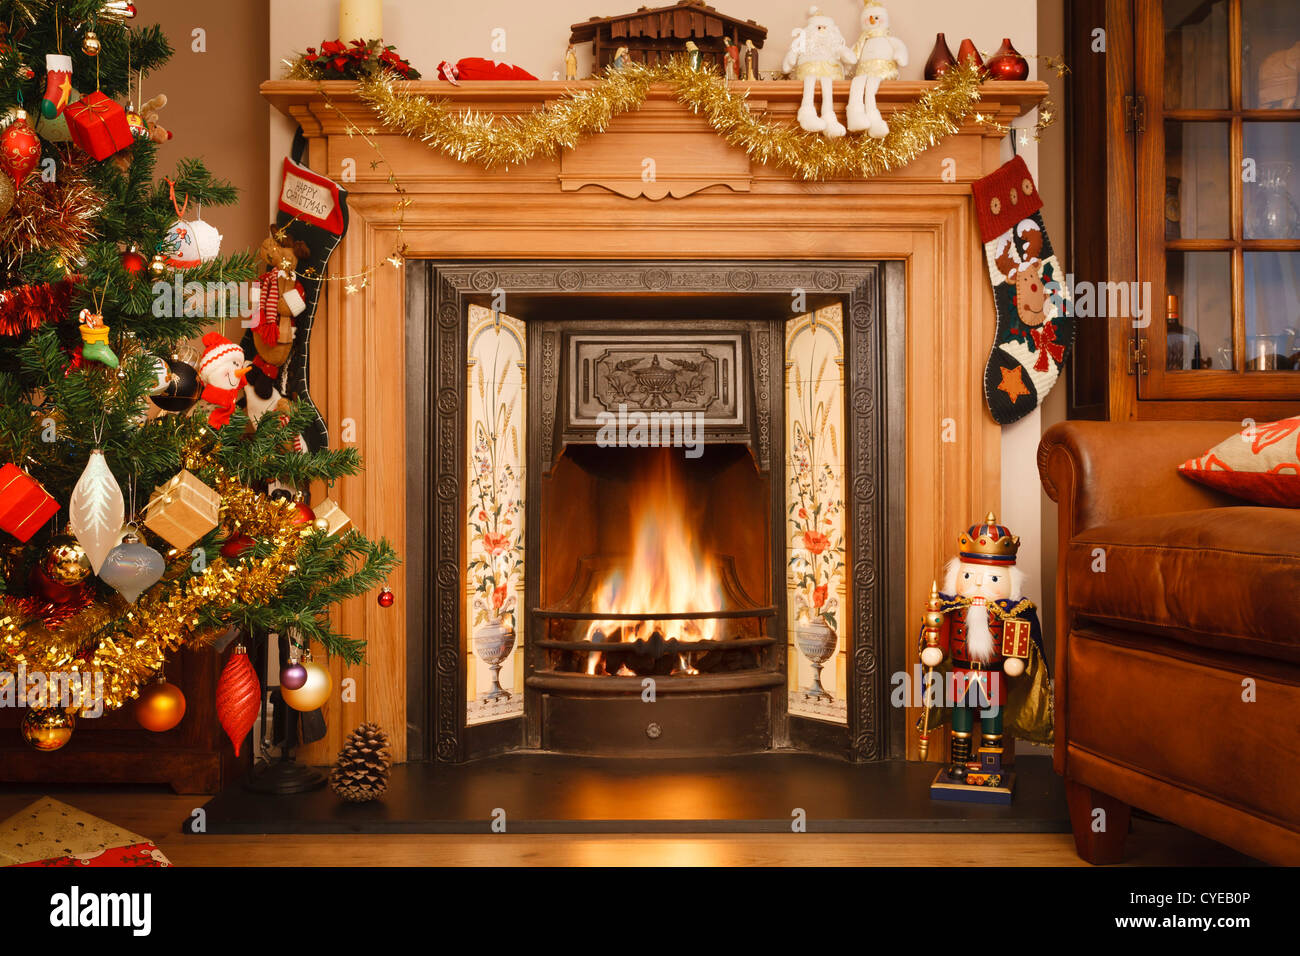 Christmas fire place in a living room - Stock Image